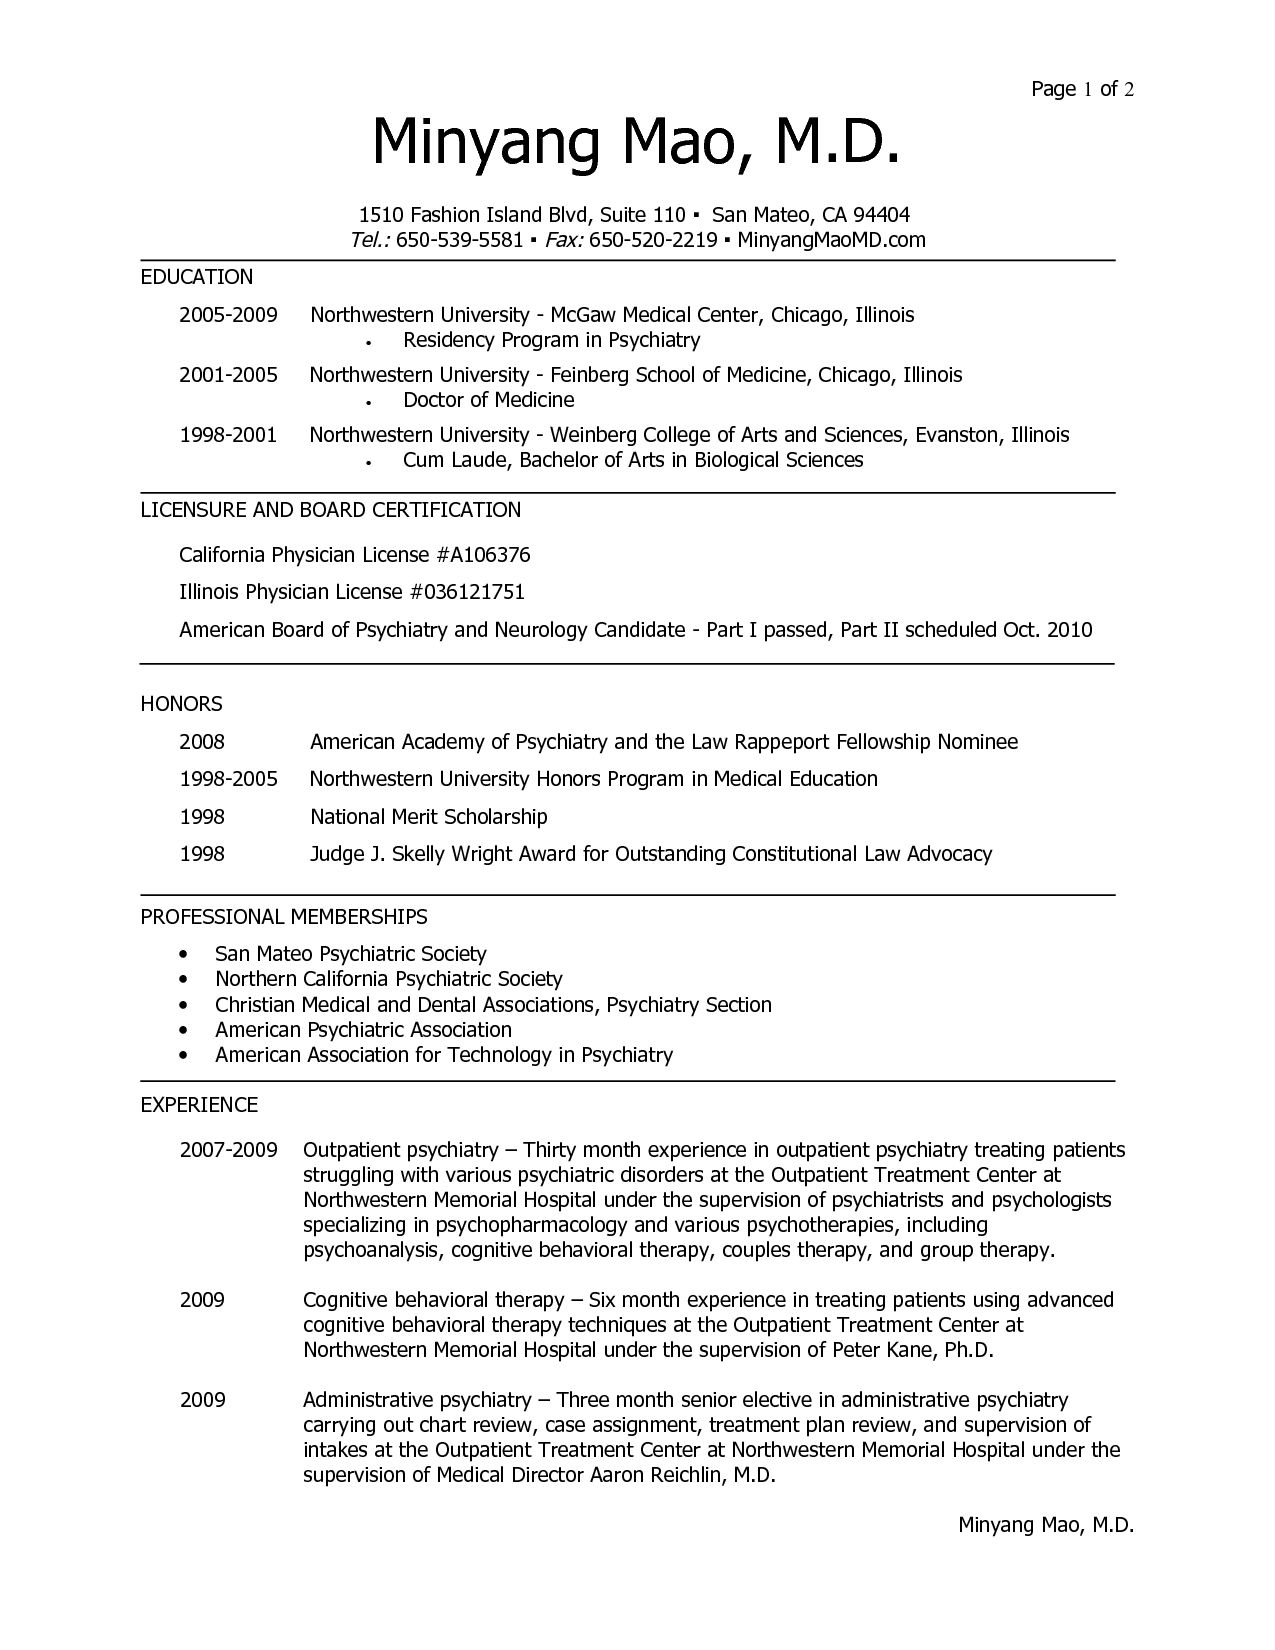 School Resume Template Medical School Resume Template Medical School Resume Example